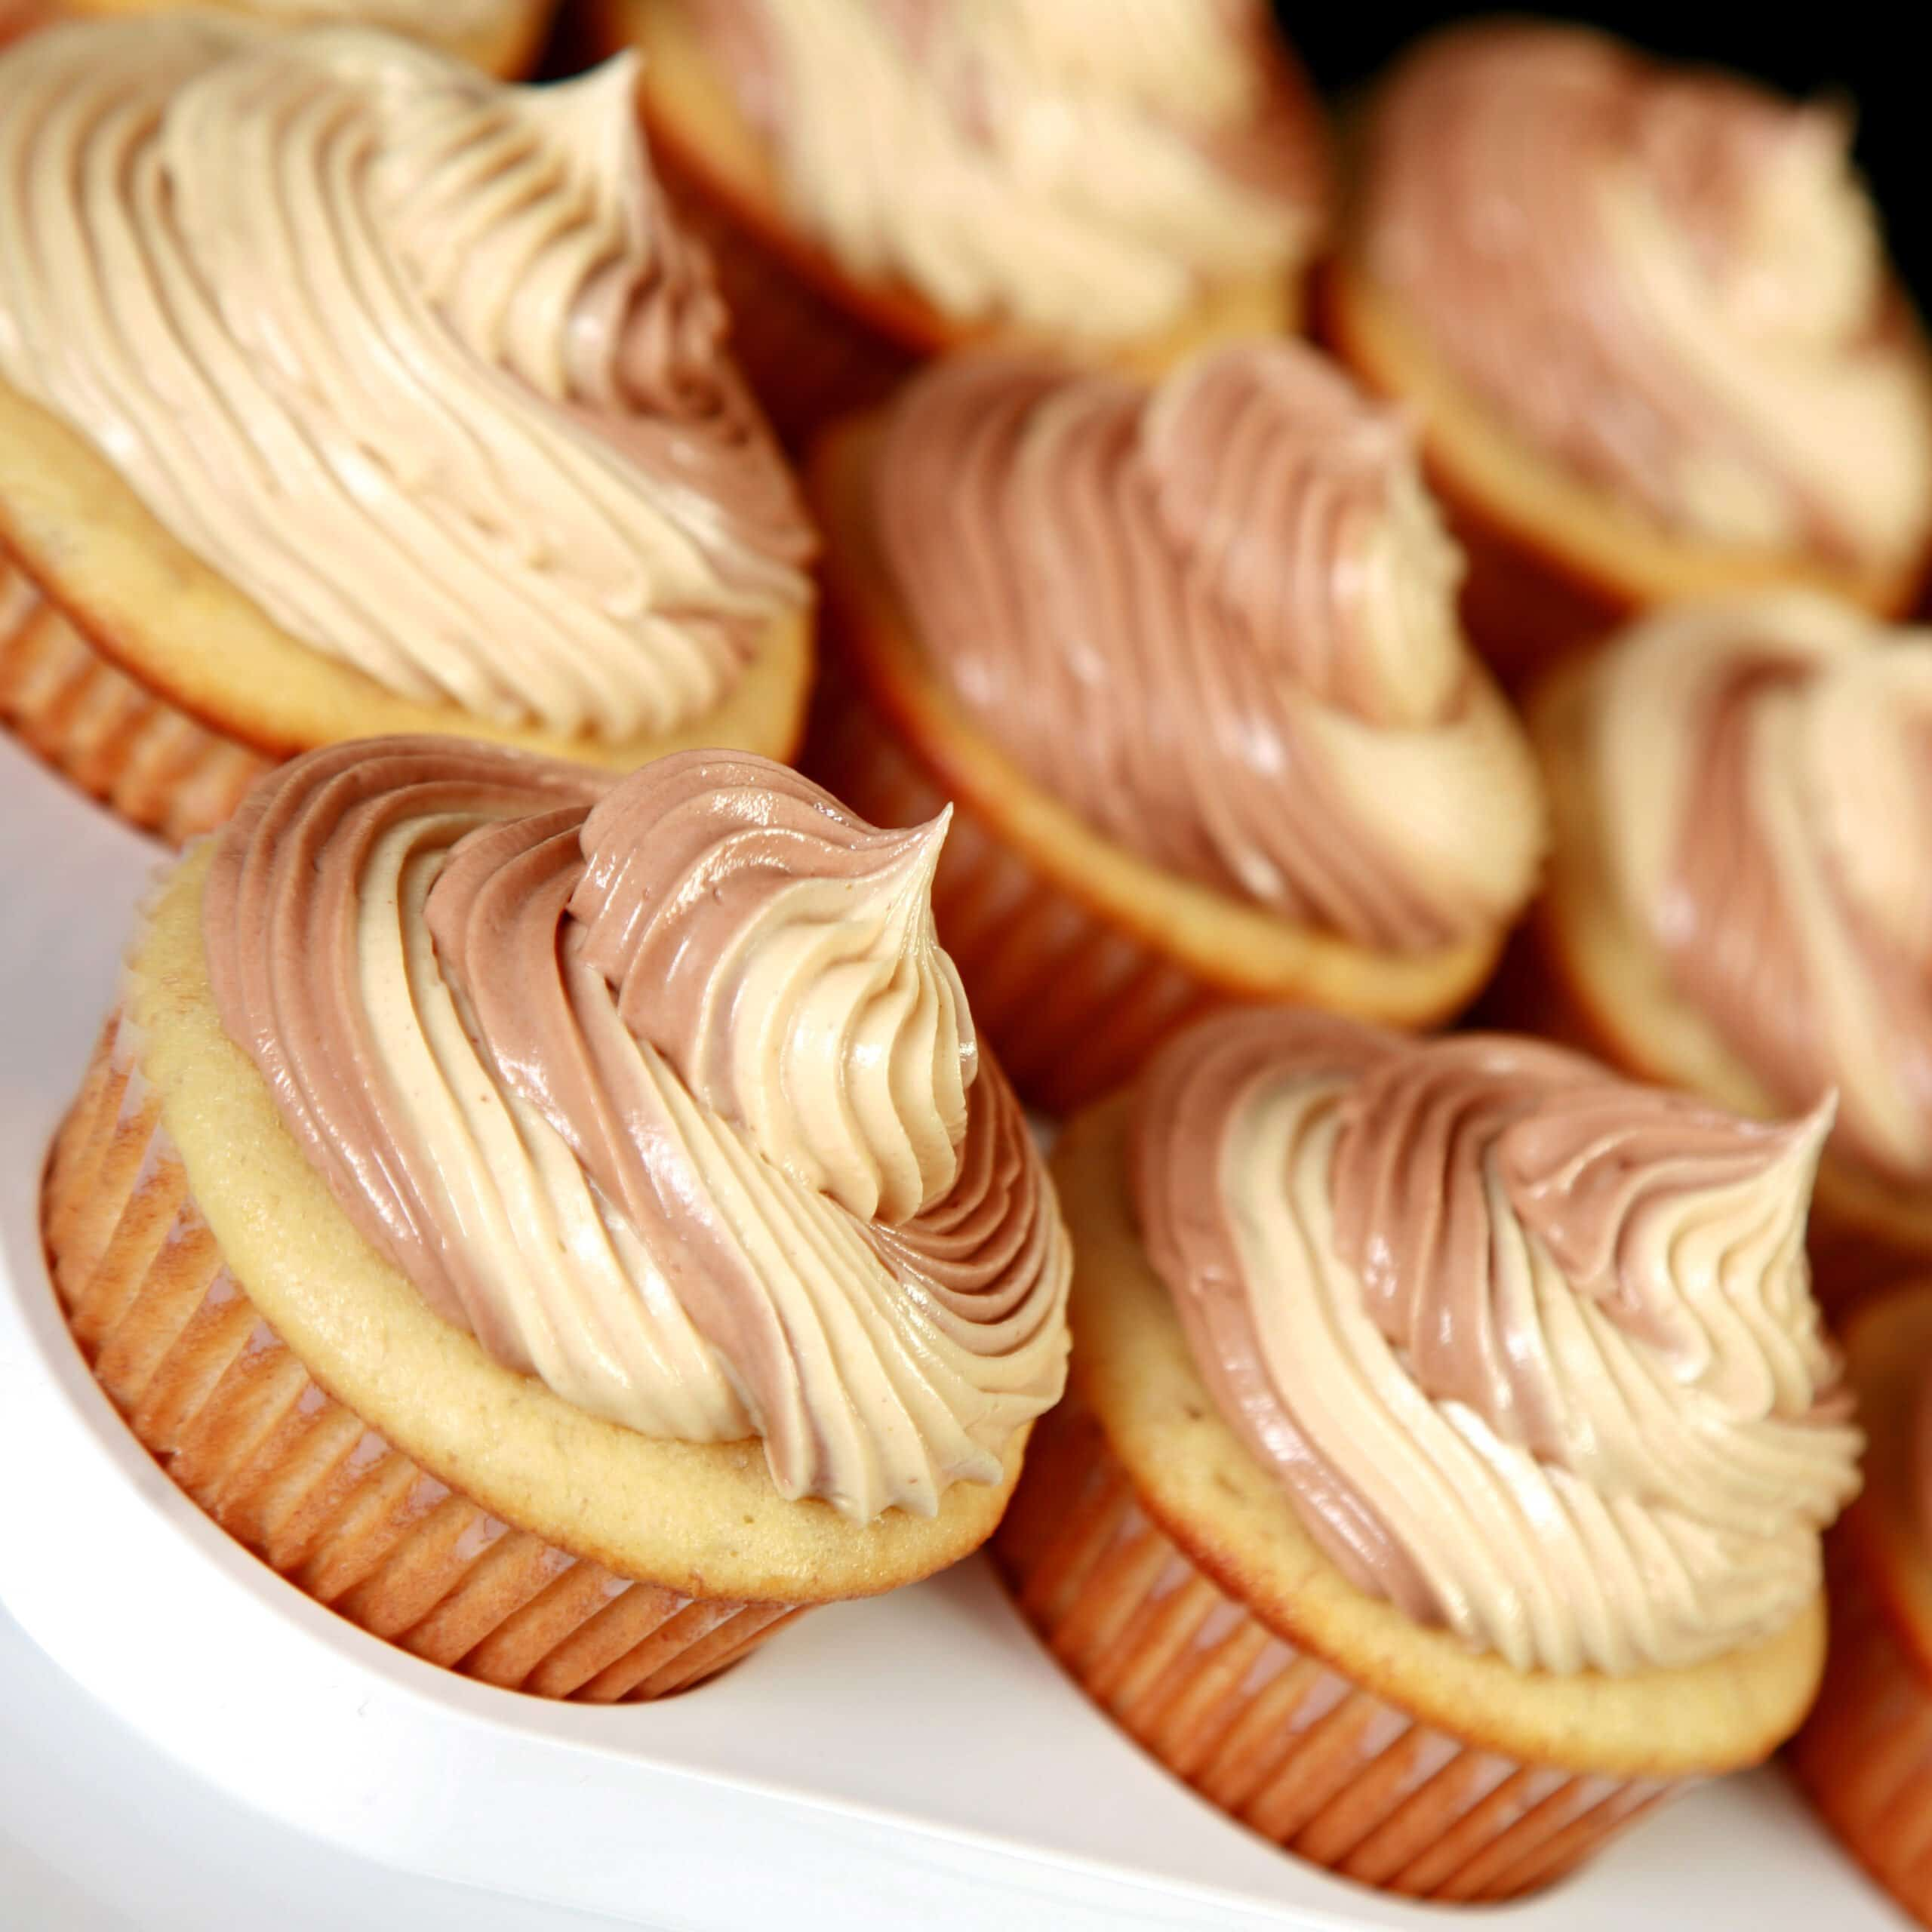 A tray of Fat Elvis Cupcakes - Banana cupcakes frosted with a two-tone swirl of Swiss Meringue buttercream, in both peanut butter and chocolate flavours.